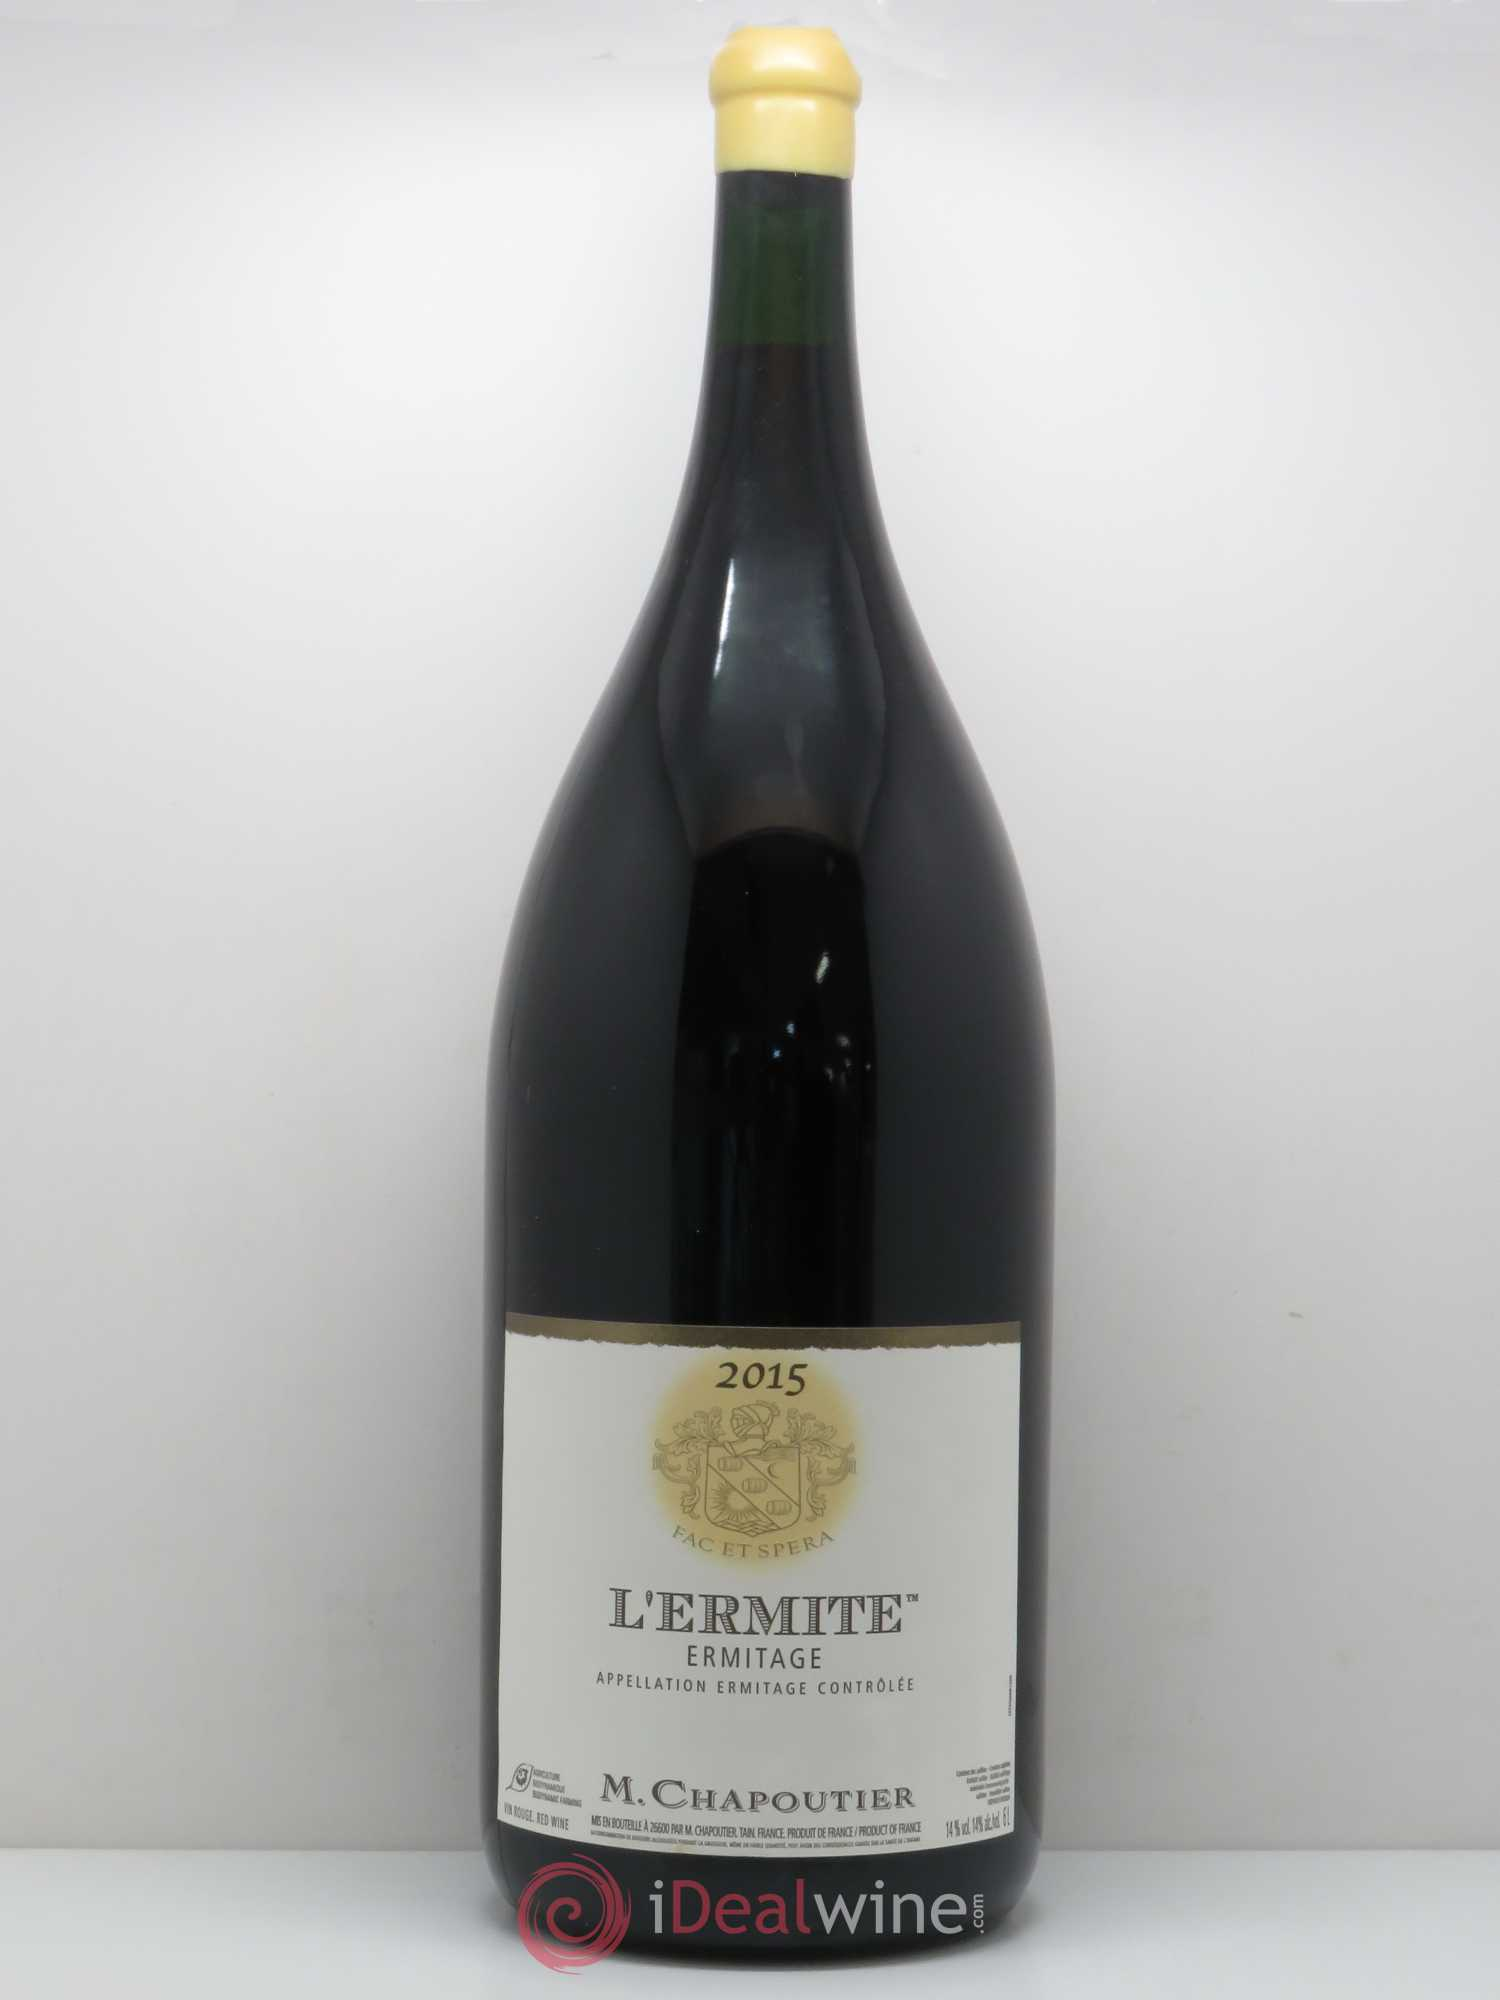 Hermitage Ermitage l'Ermite Chapoutier  2015 - Lot of 1 Methuselah